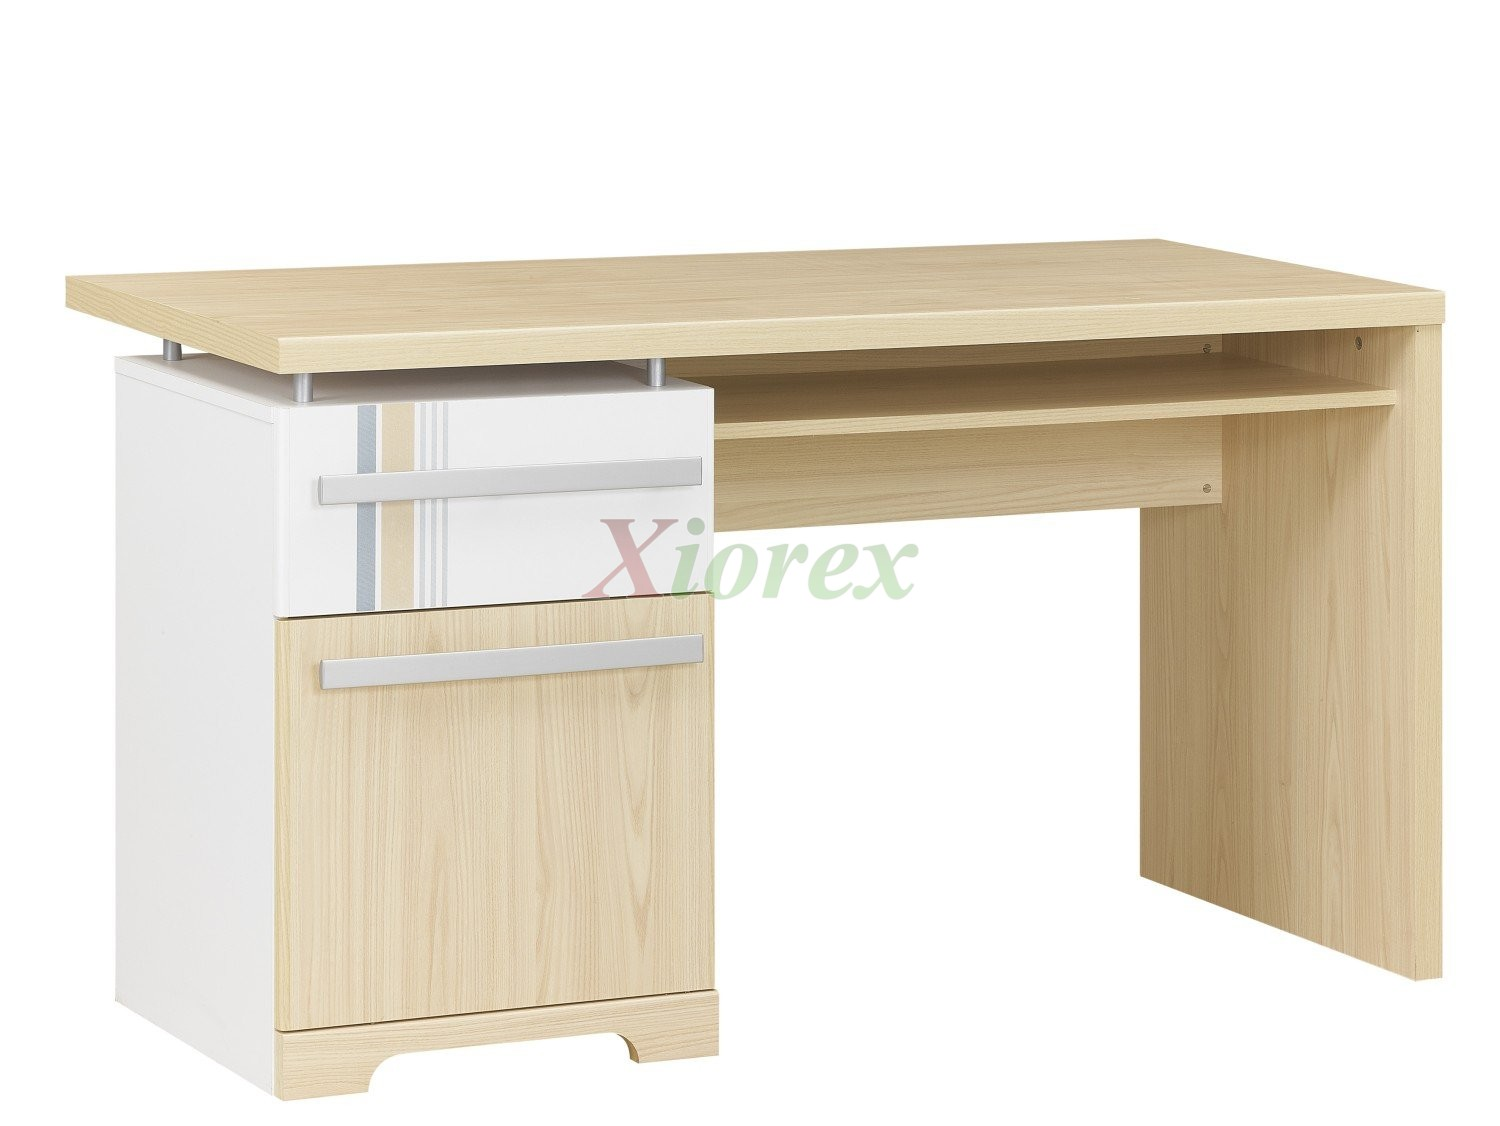 computer desk student desk for gami titouan bunk bed set xiorex bunk bed computer desk